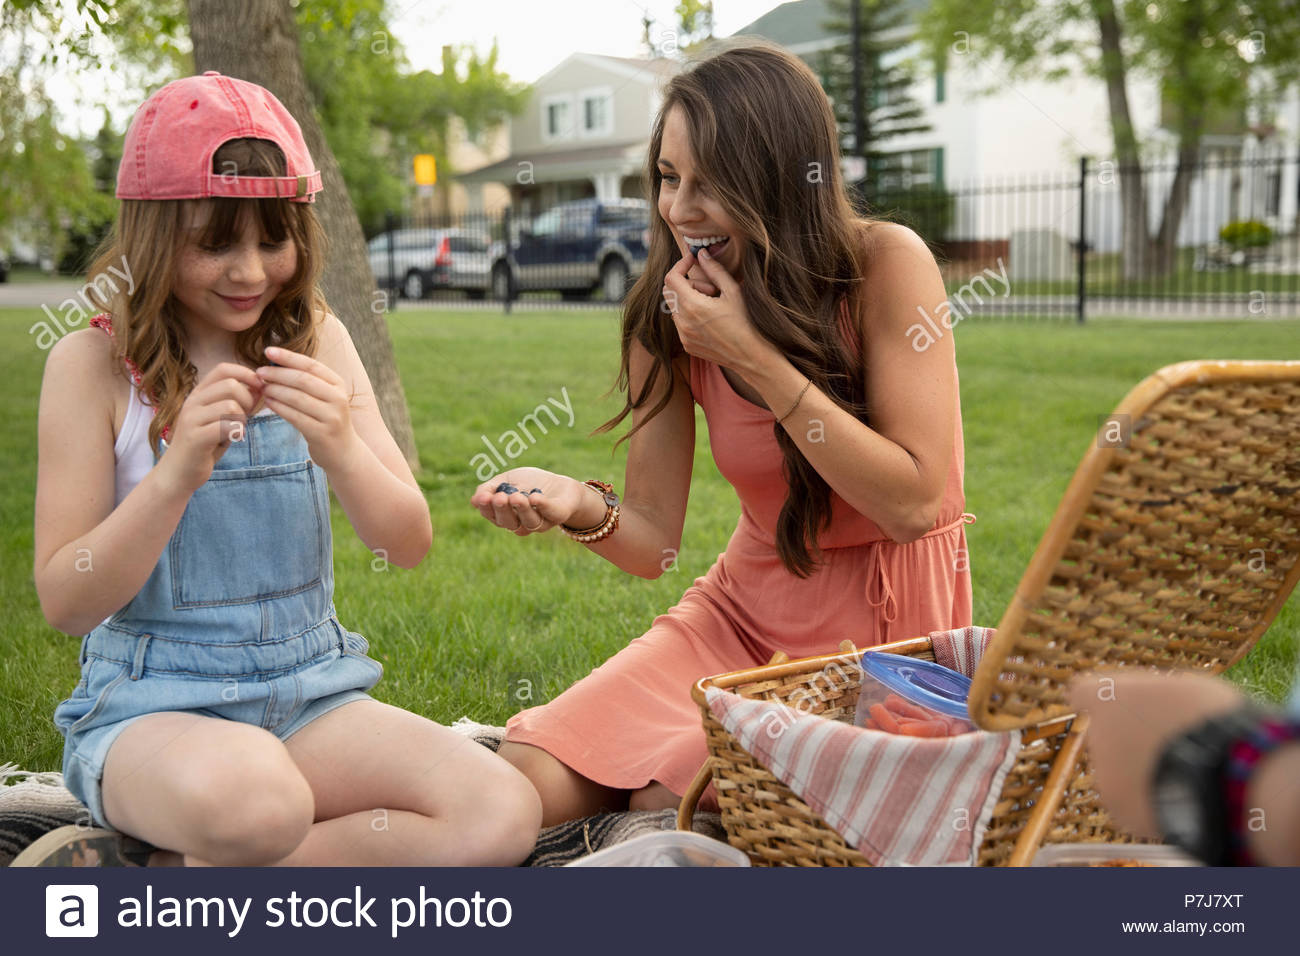 Mother and daughter eating, enjoying picnic in park - Stock Image